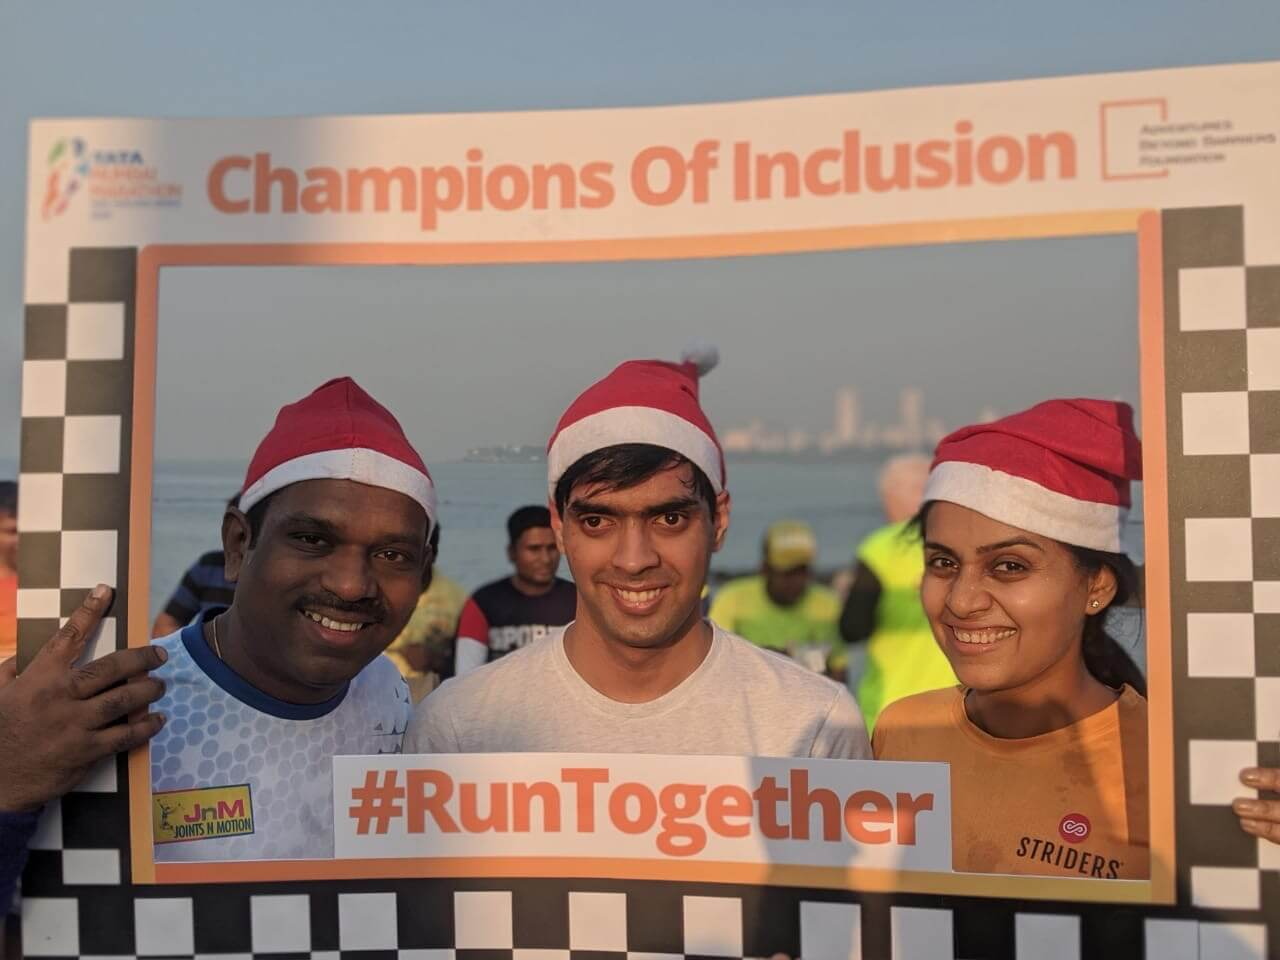 Champions of inclusion with ABBF